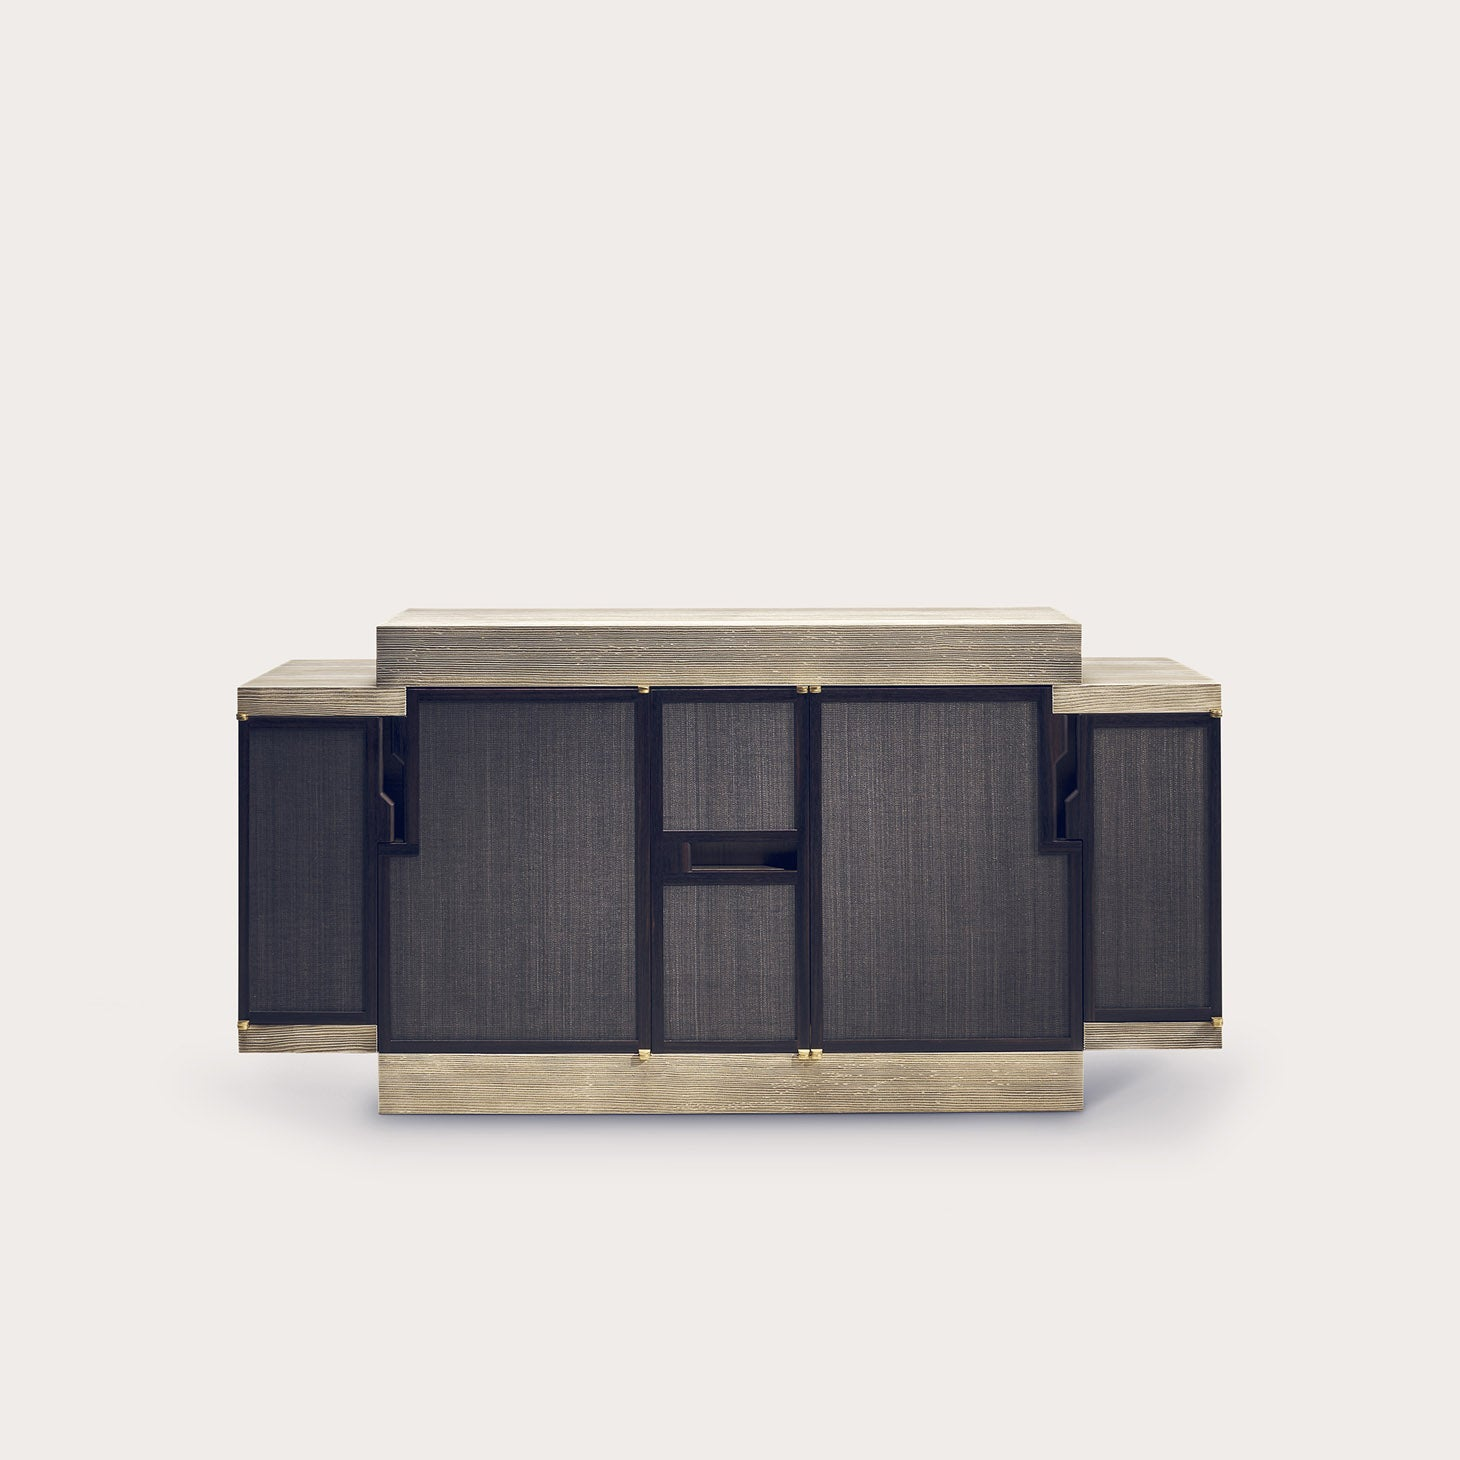 PANDO Storage Bruno Moinard Designer Furniture Sku: 773-220-10007